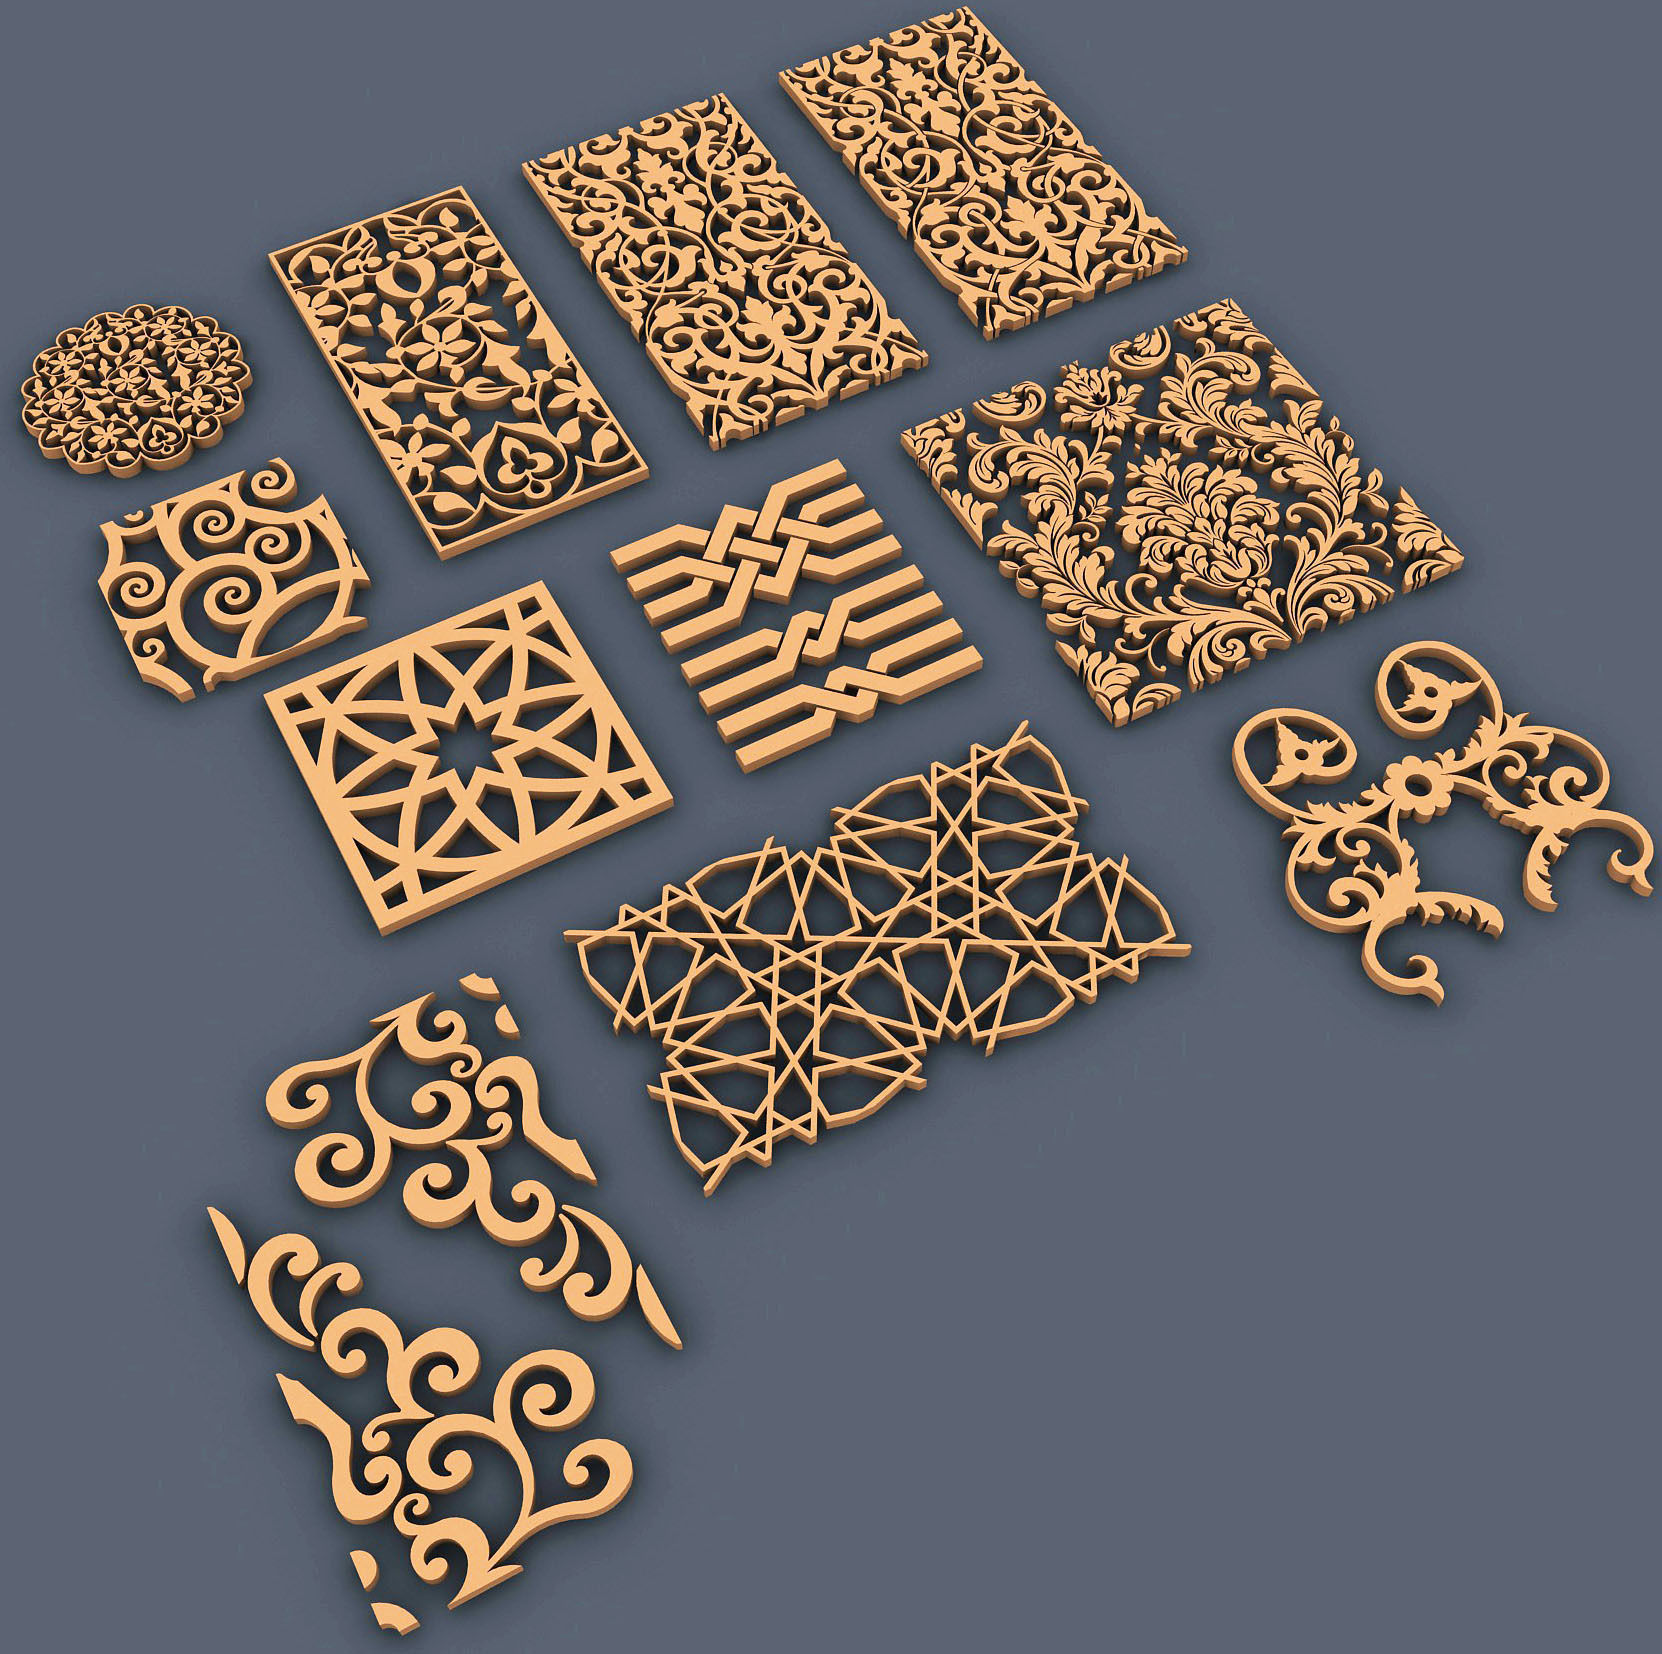 Ornaments 3d model max dwg for Decoration 3ds max